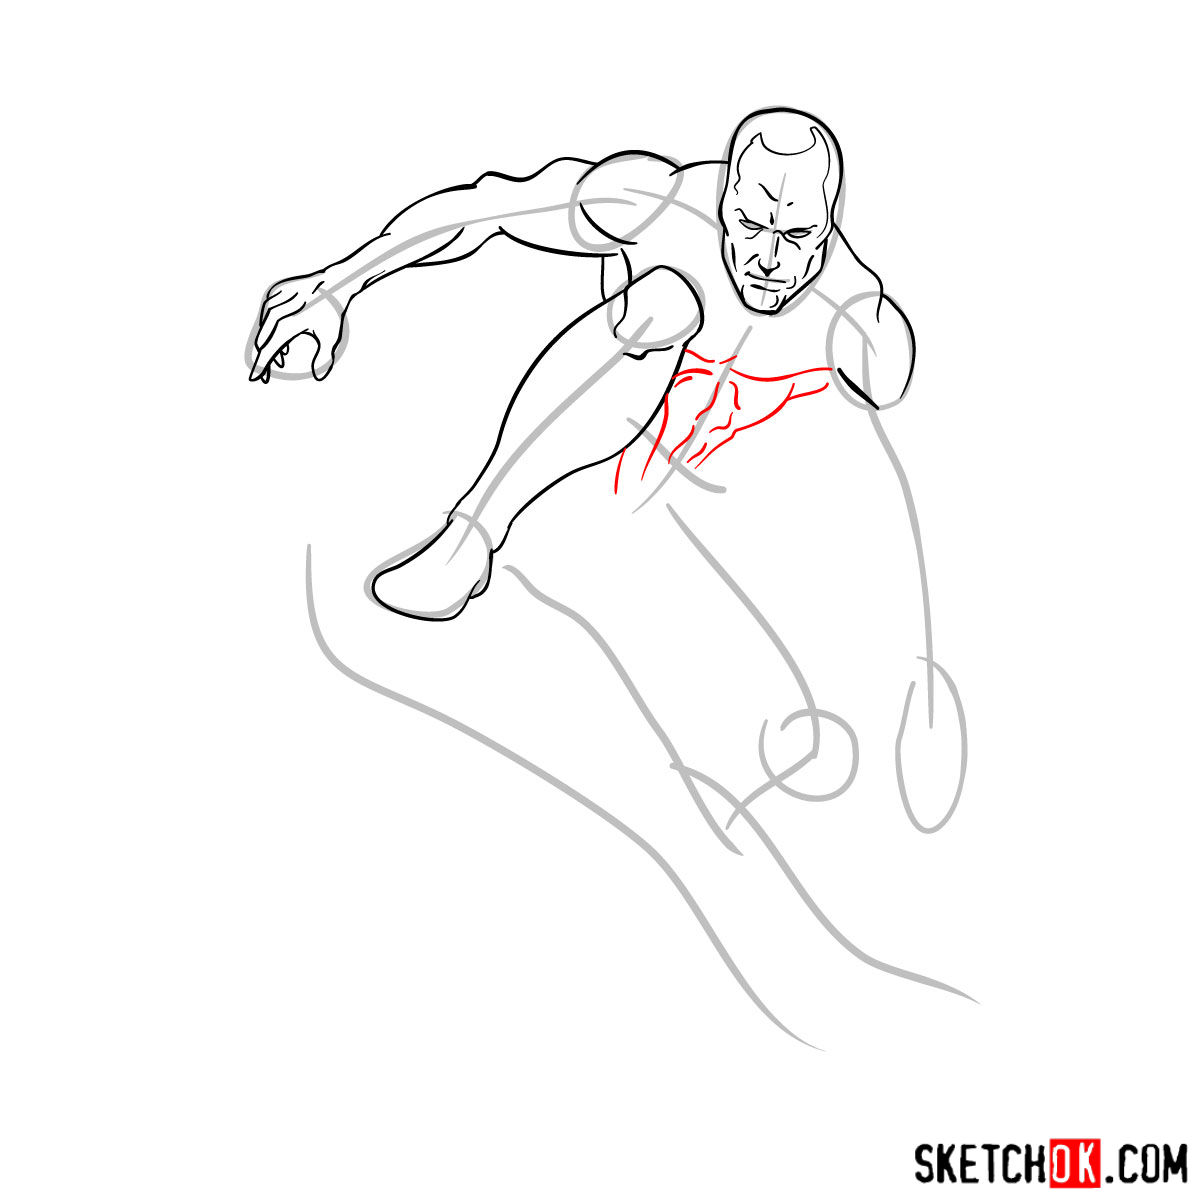 How to draw Iceman - step by step drawing tutorial - step 07